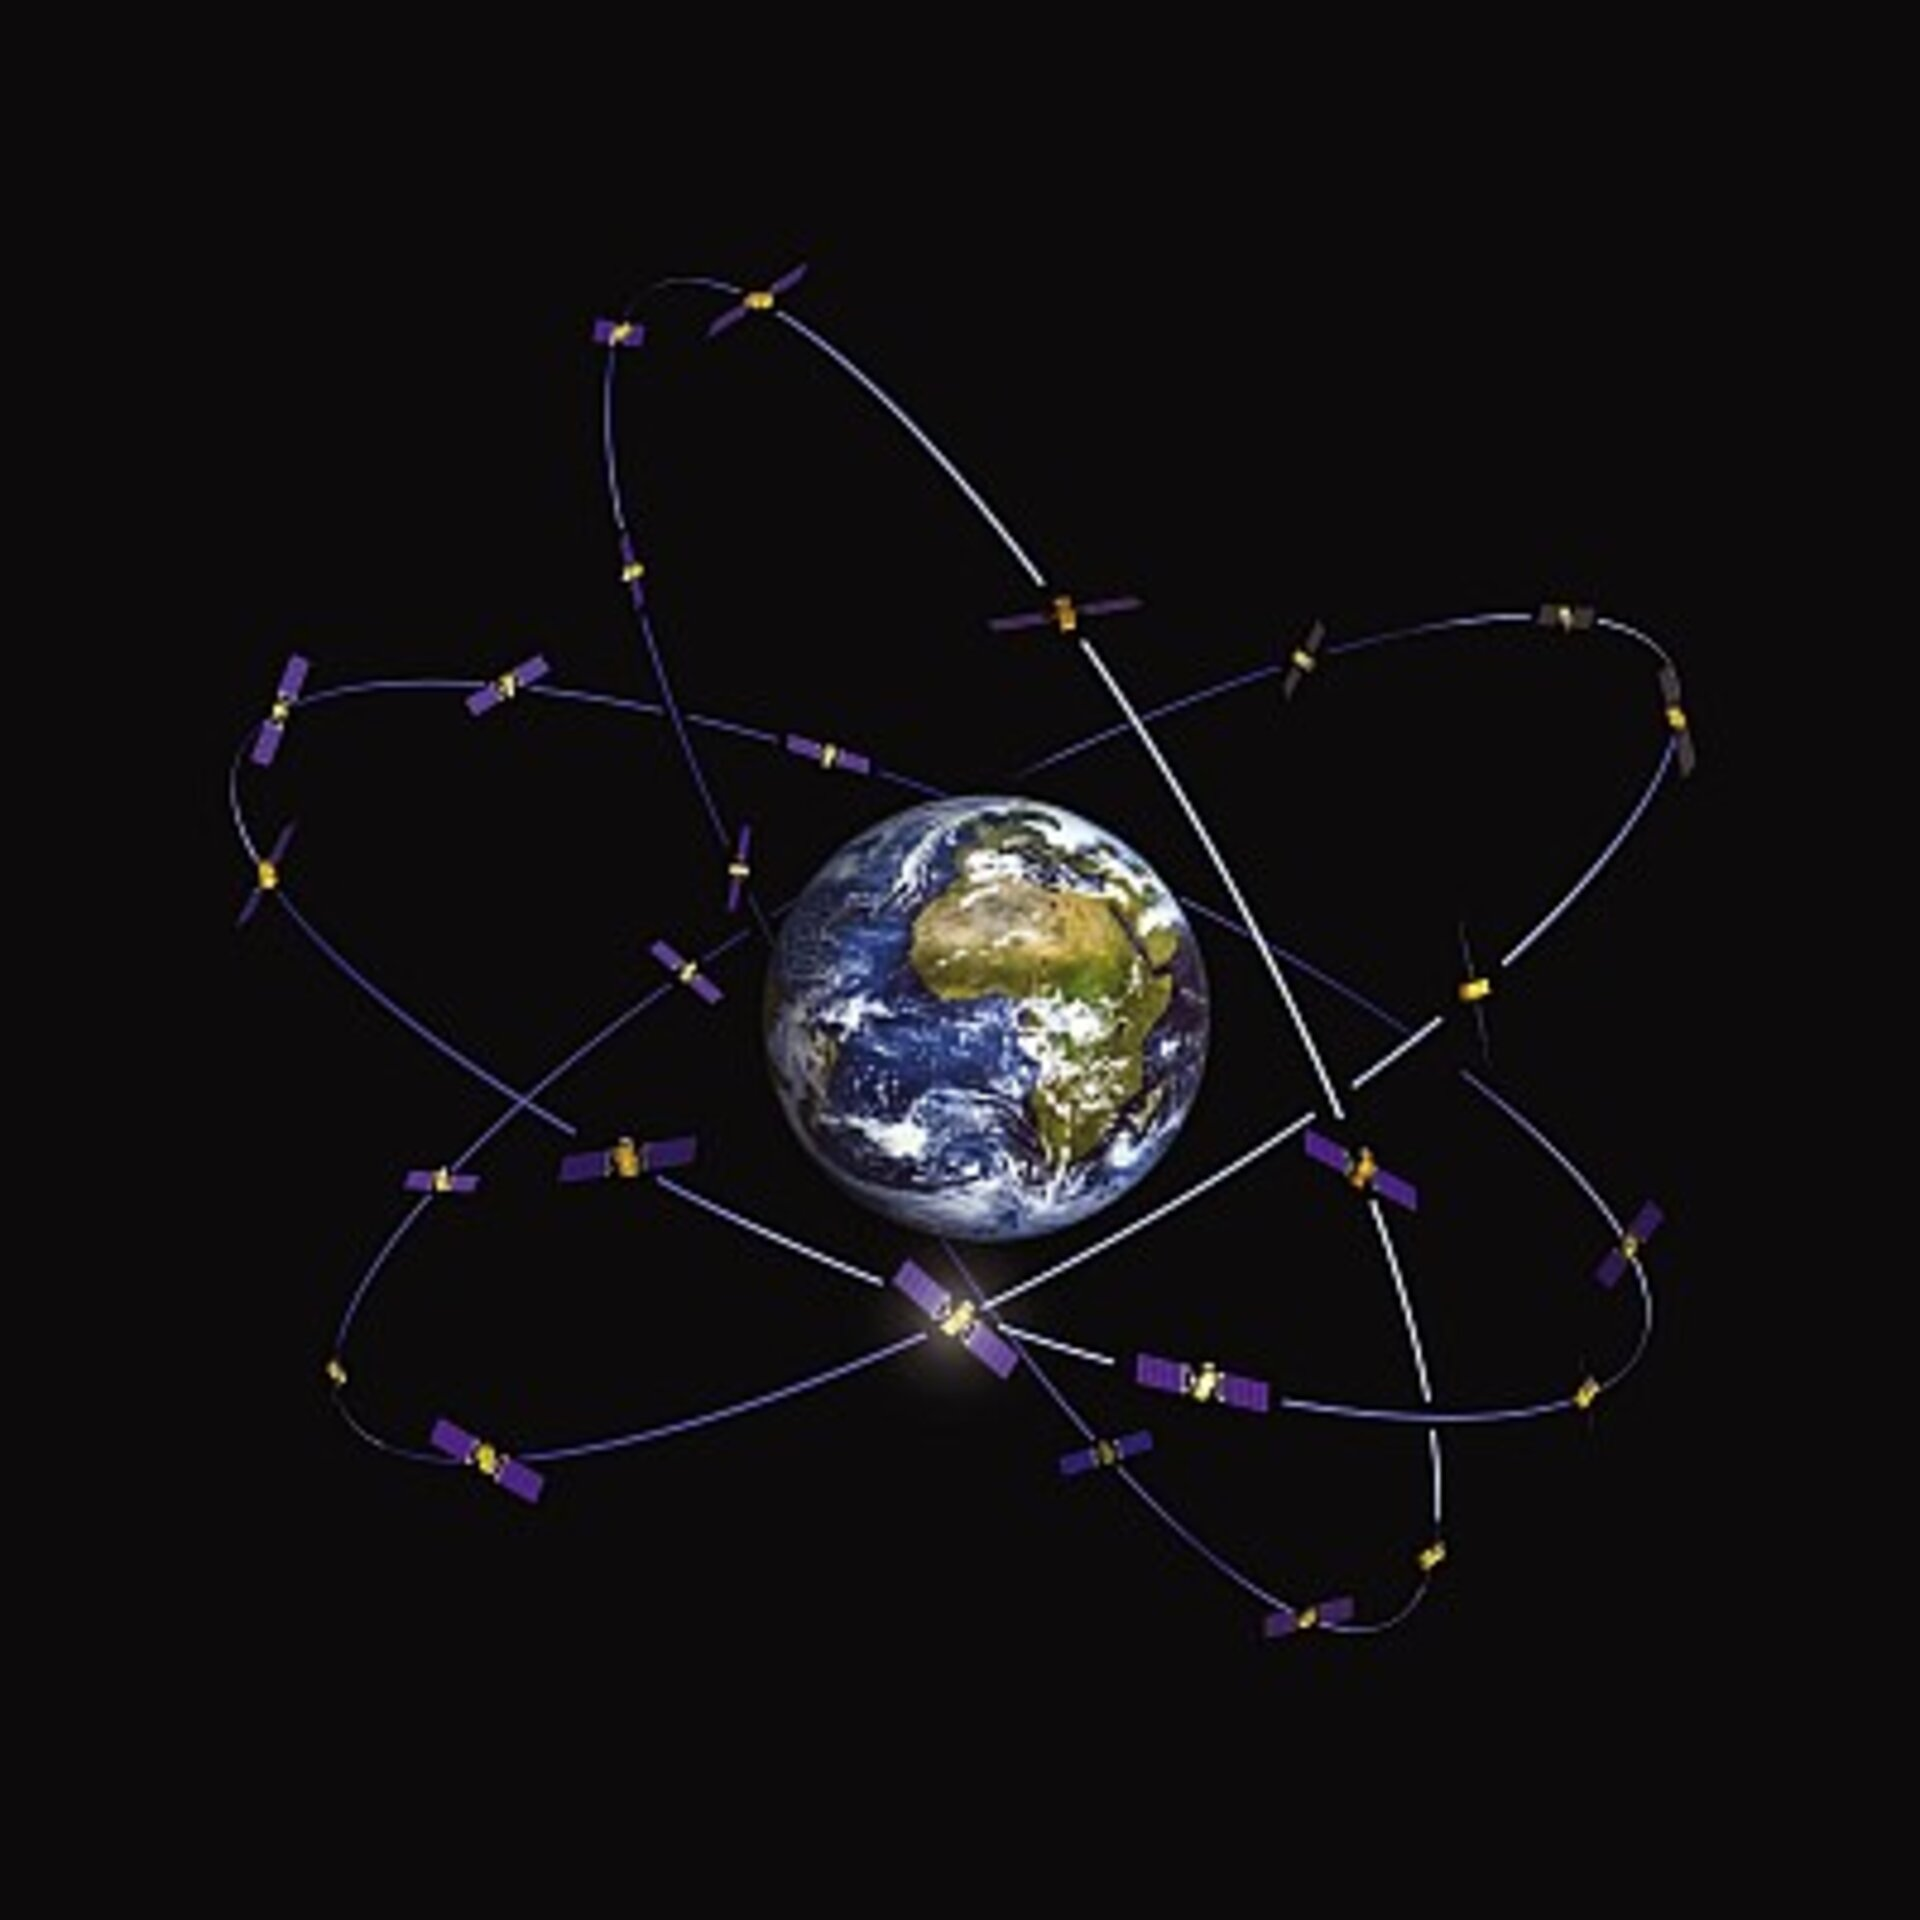 Galileo final constellation of 30 satellites